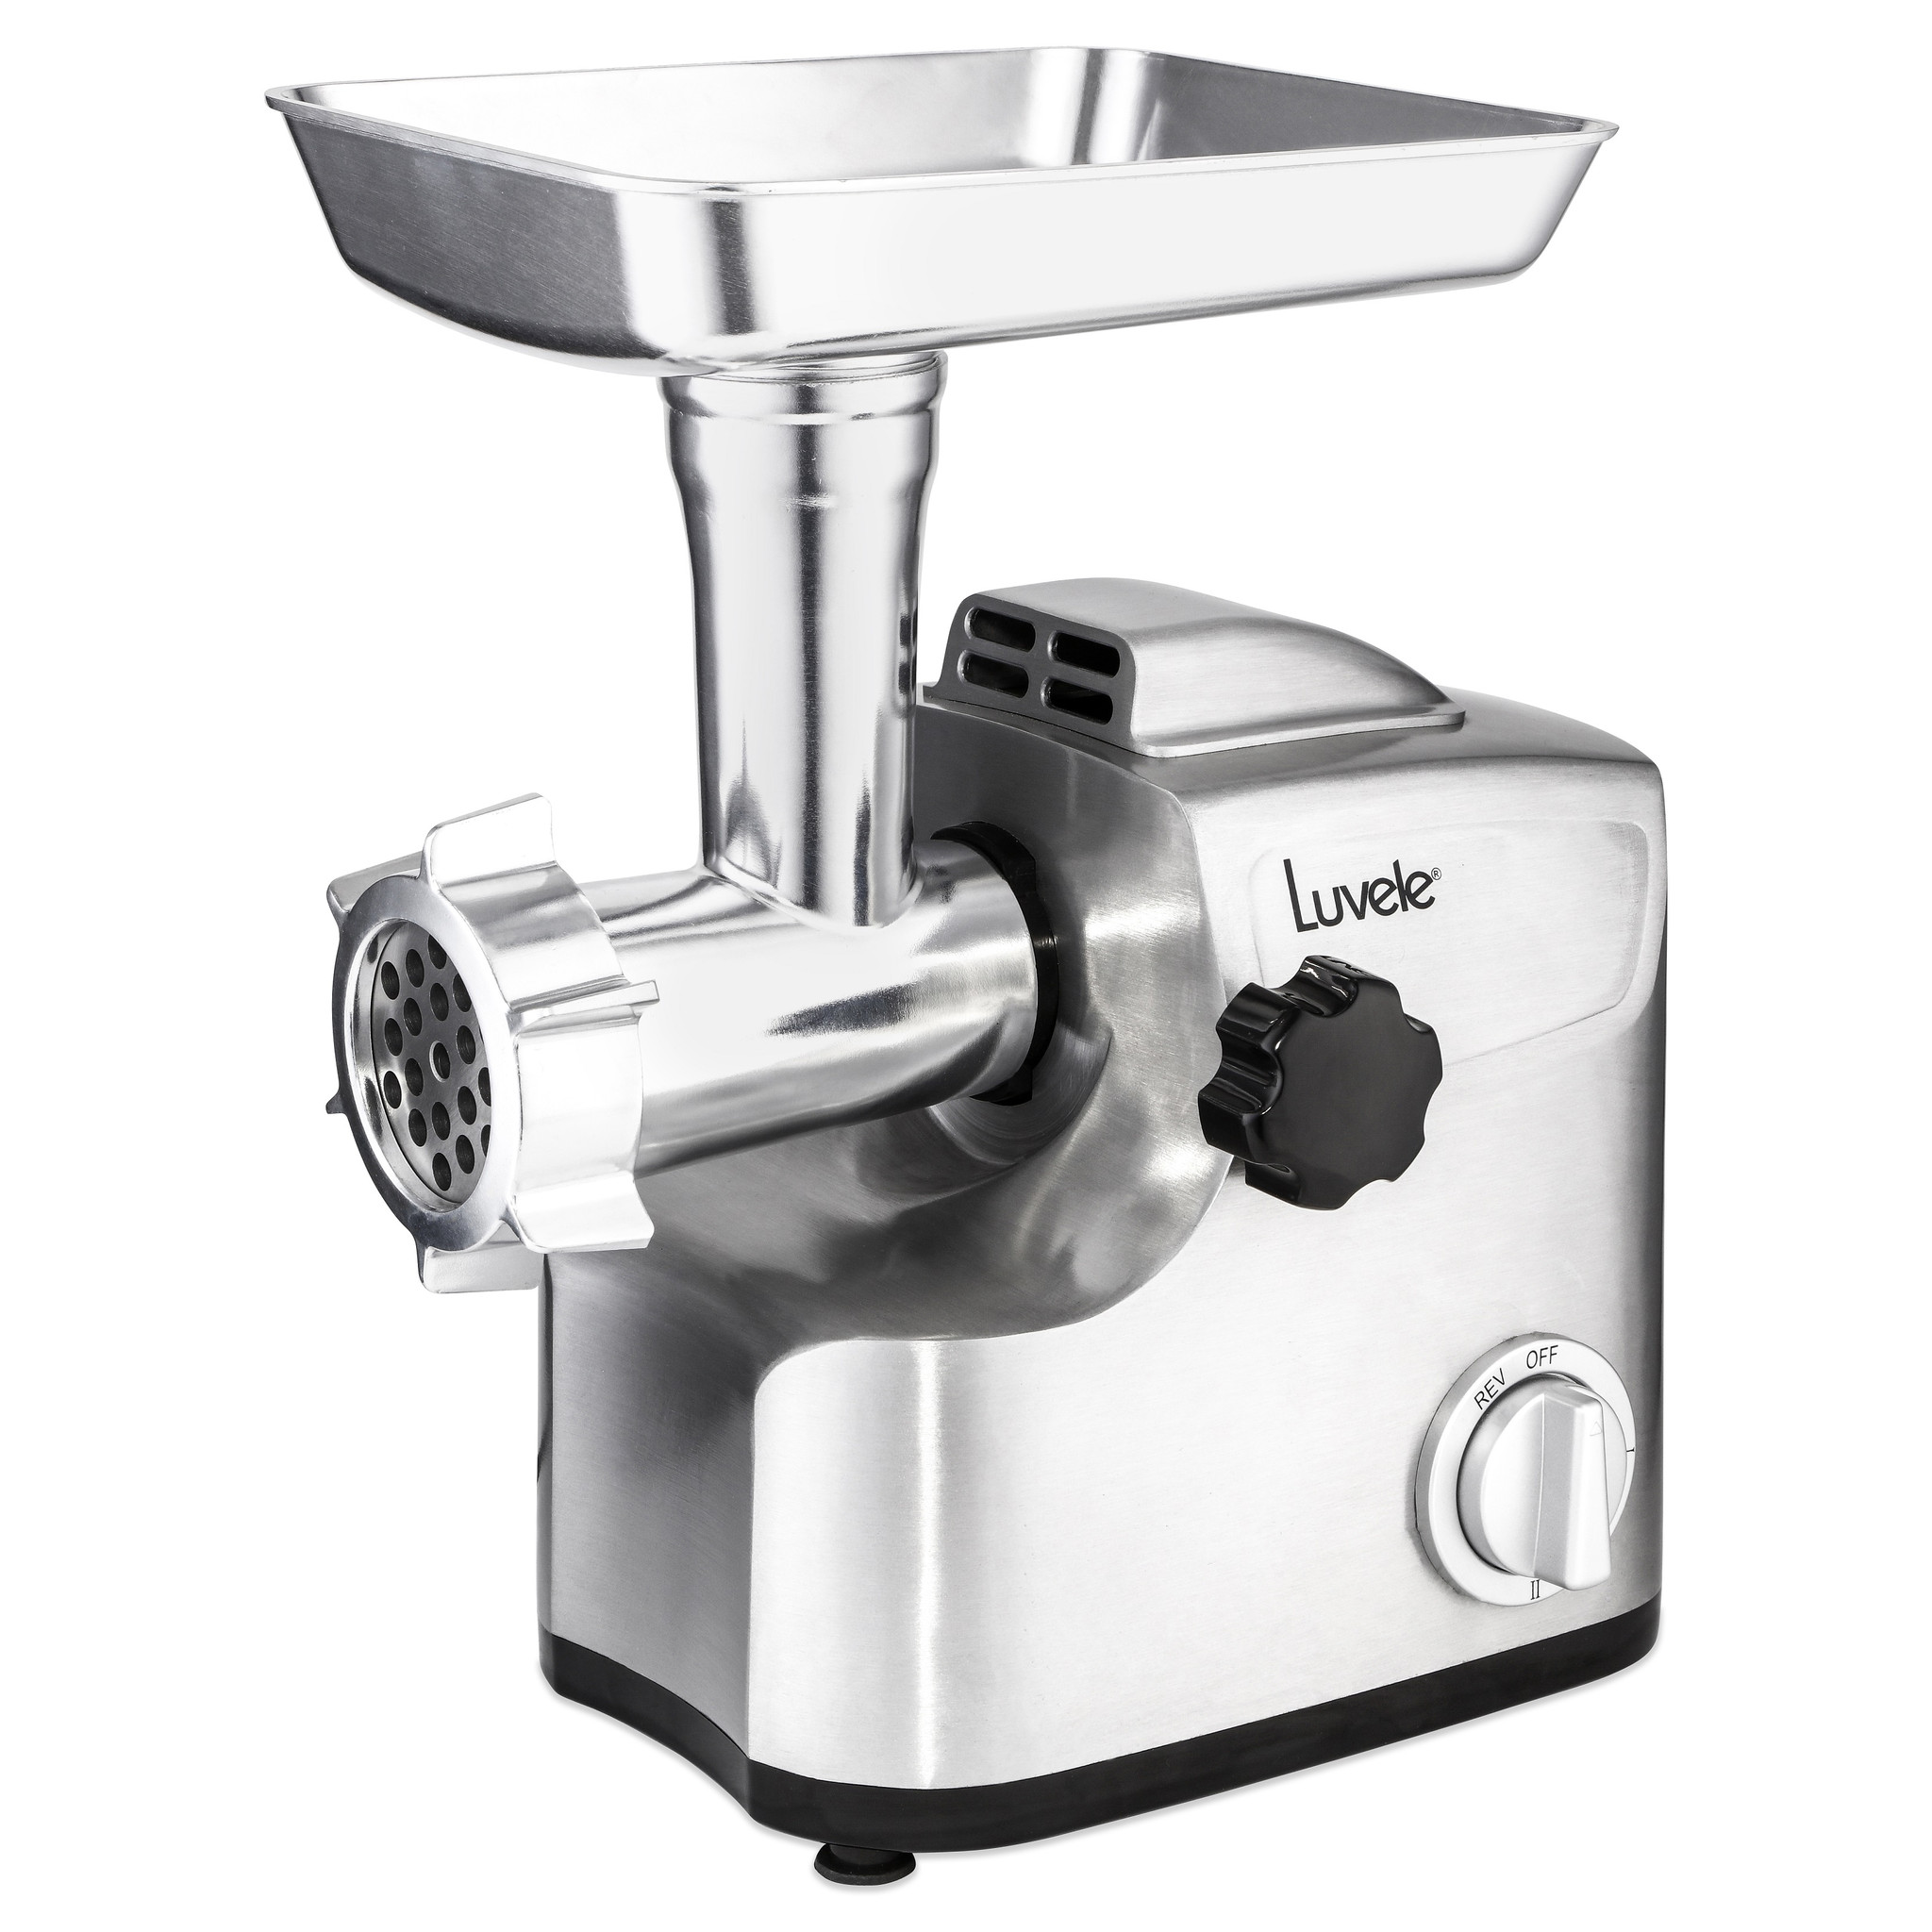 Luvele Ultimate Meat Grinder Lpmg700 Reviews